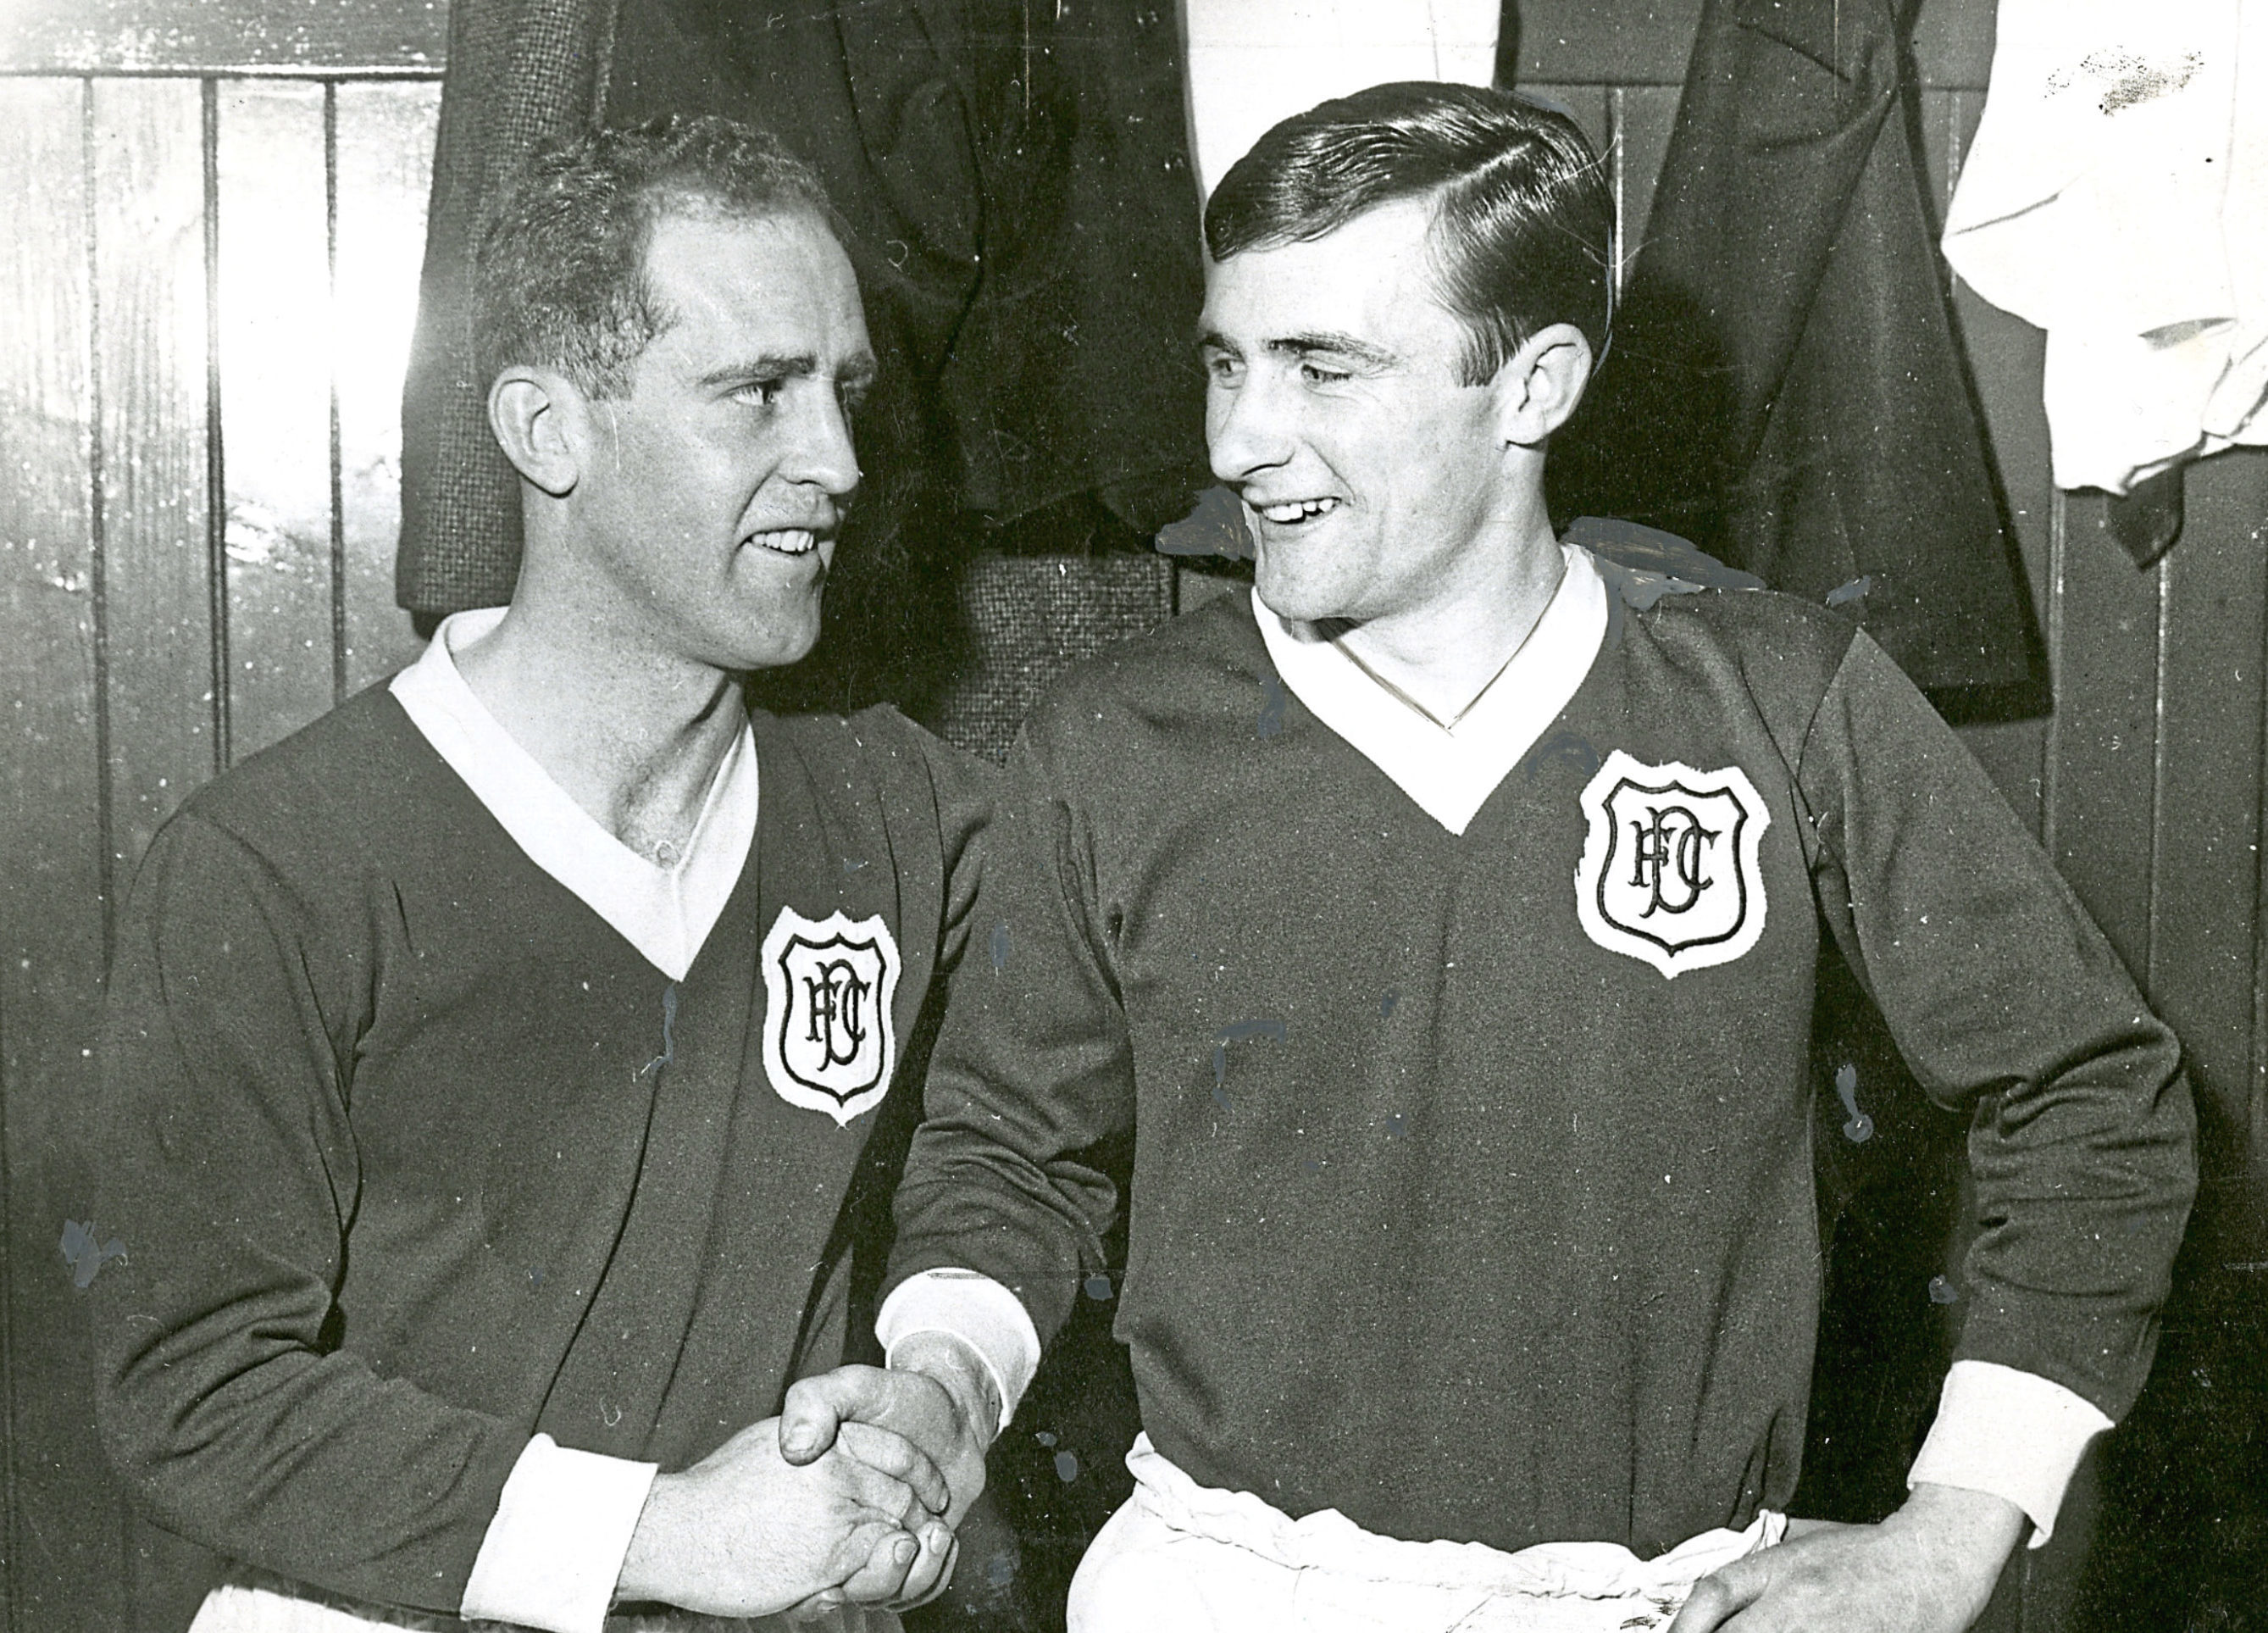 Just about to go out to play for Dundee together for the first time are Sammy Wilson (left) and Bobby Wilson.